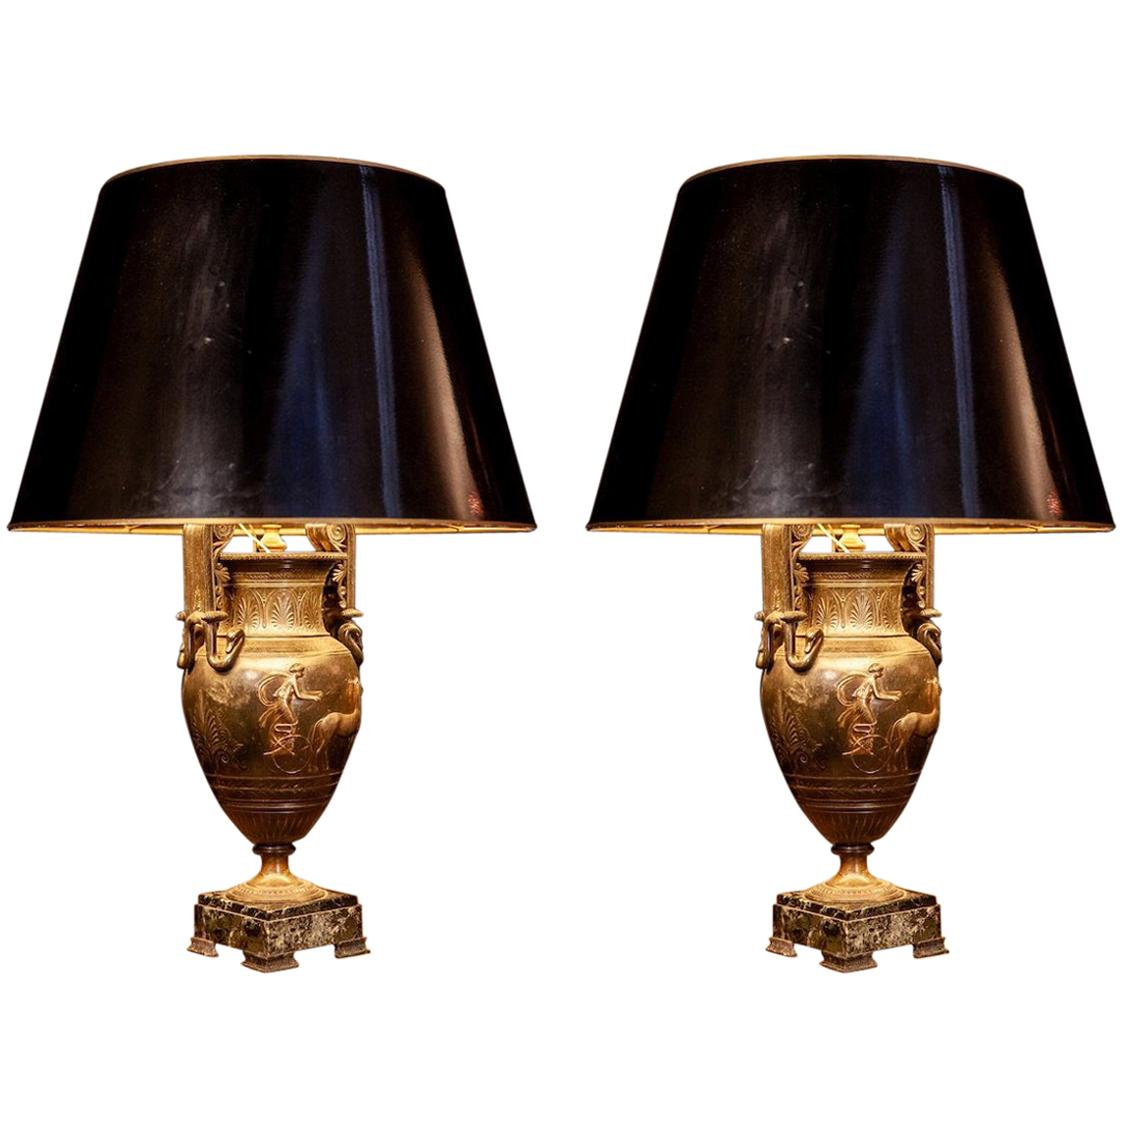 French Cast Iron Vases or Table Lamps and Green Marble Base, 19th Century, Pair